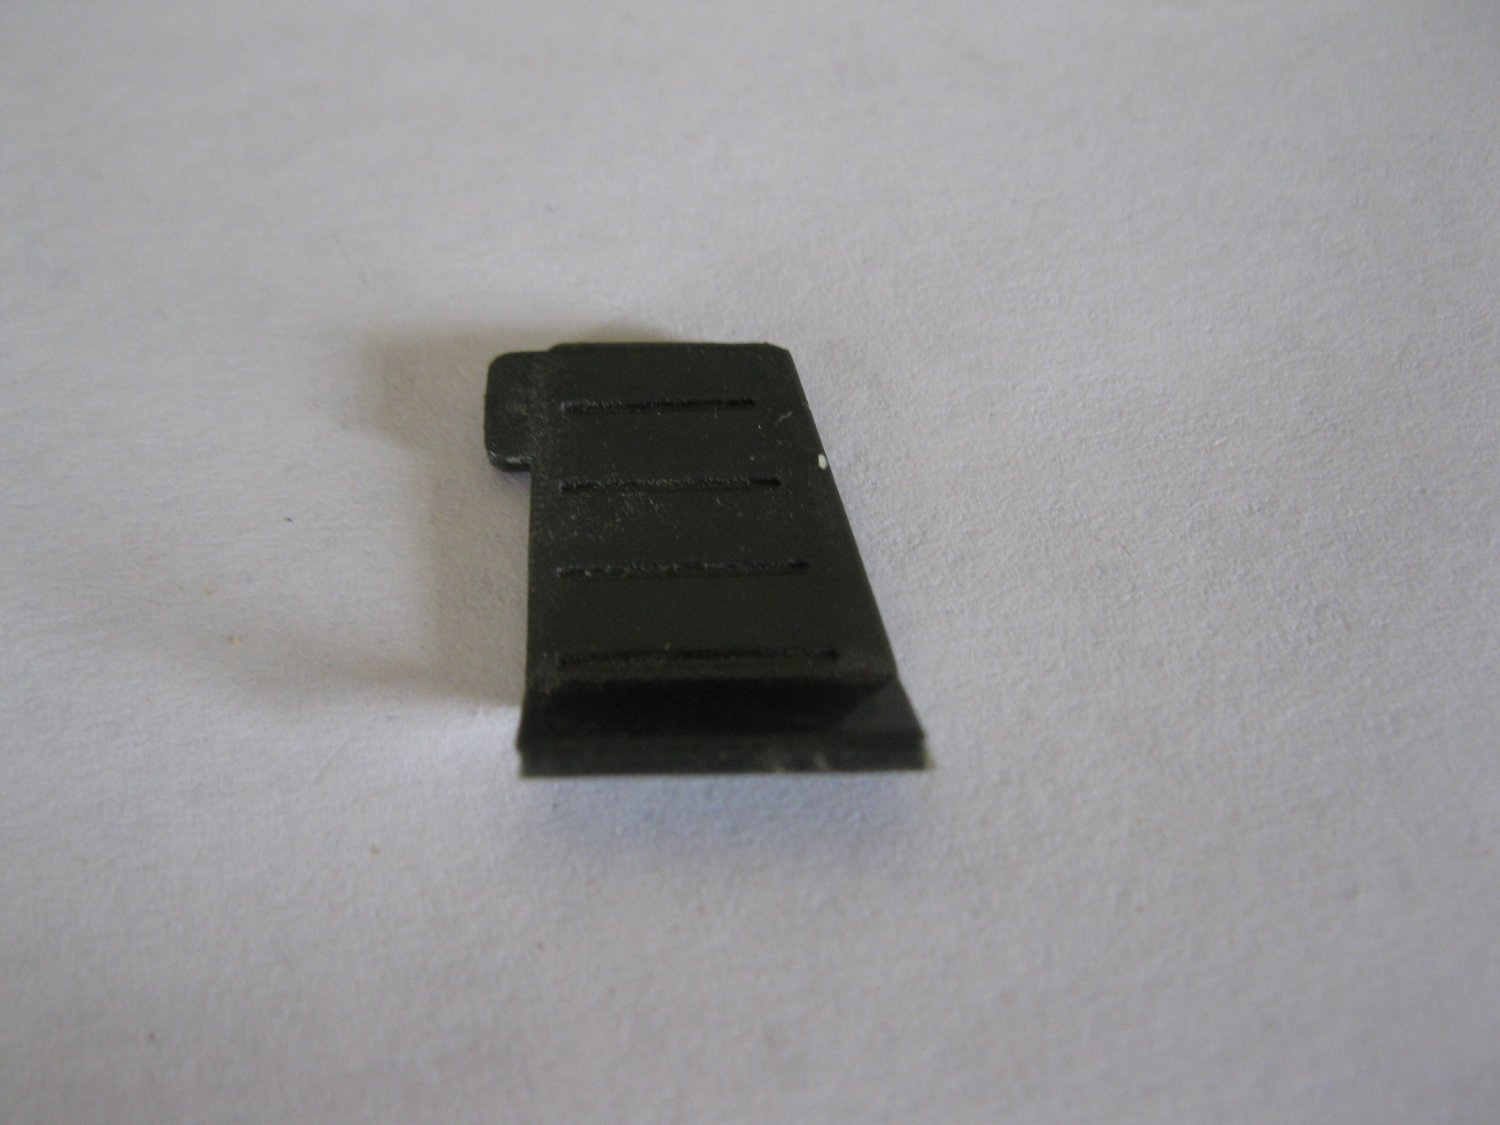 G1 Transformers Action figure part: 1984 Jetfire - Black Left Shoulder Insert